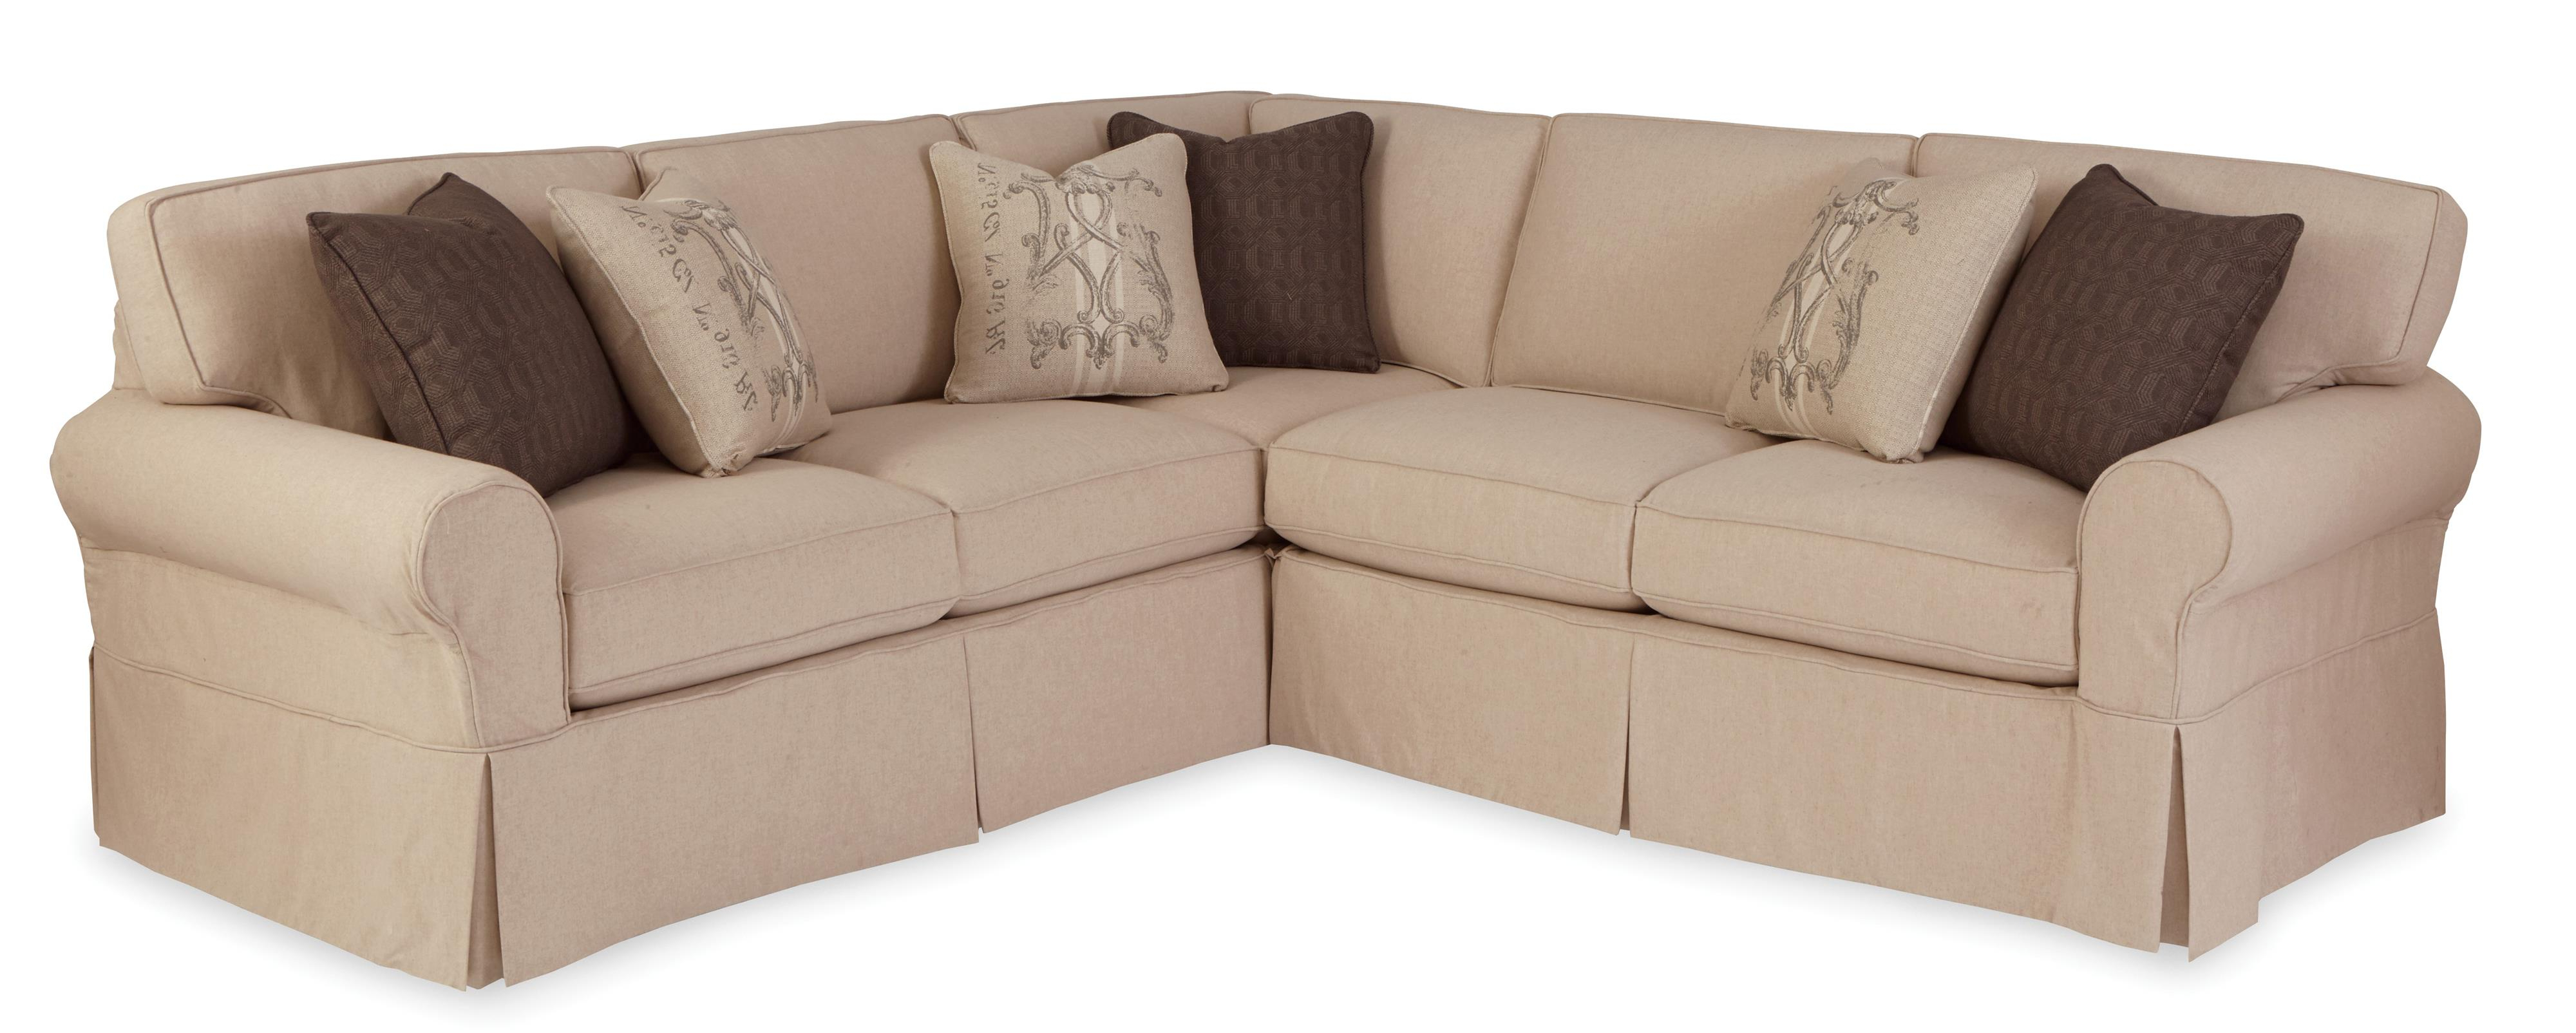 Josephine 2 Piece Sectionals With Laf Sofa In Recent Craftmaster 9228 Two Piece Slipcovered Sectional Sofa With Raf (Gallery 9 of 20)